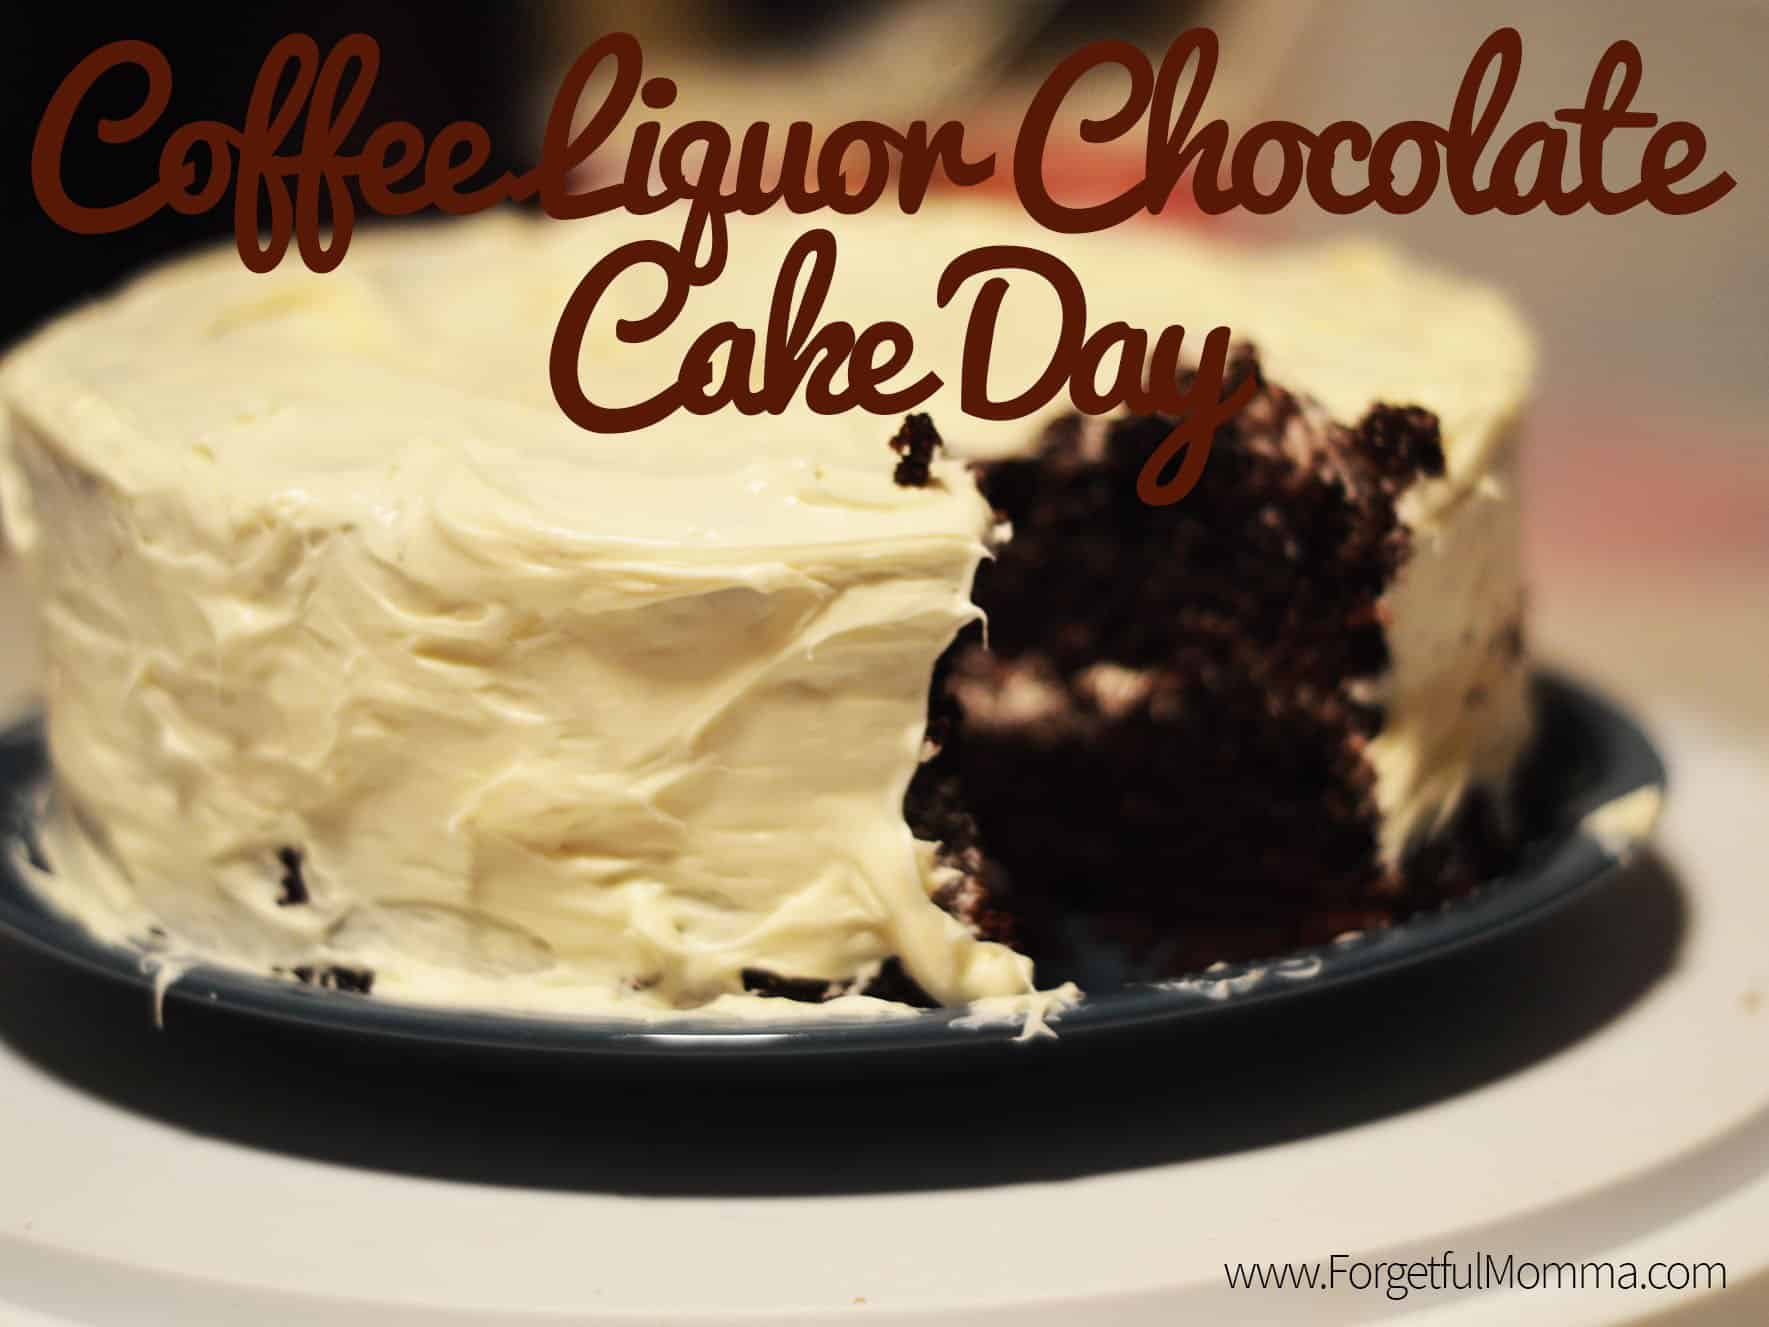 Coffee Liquor Chocolate Cake